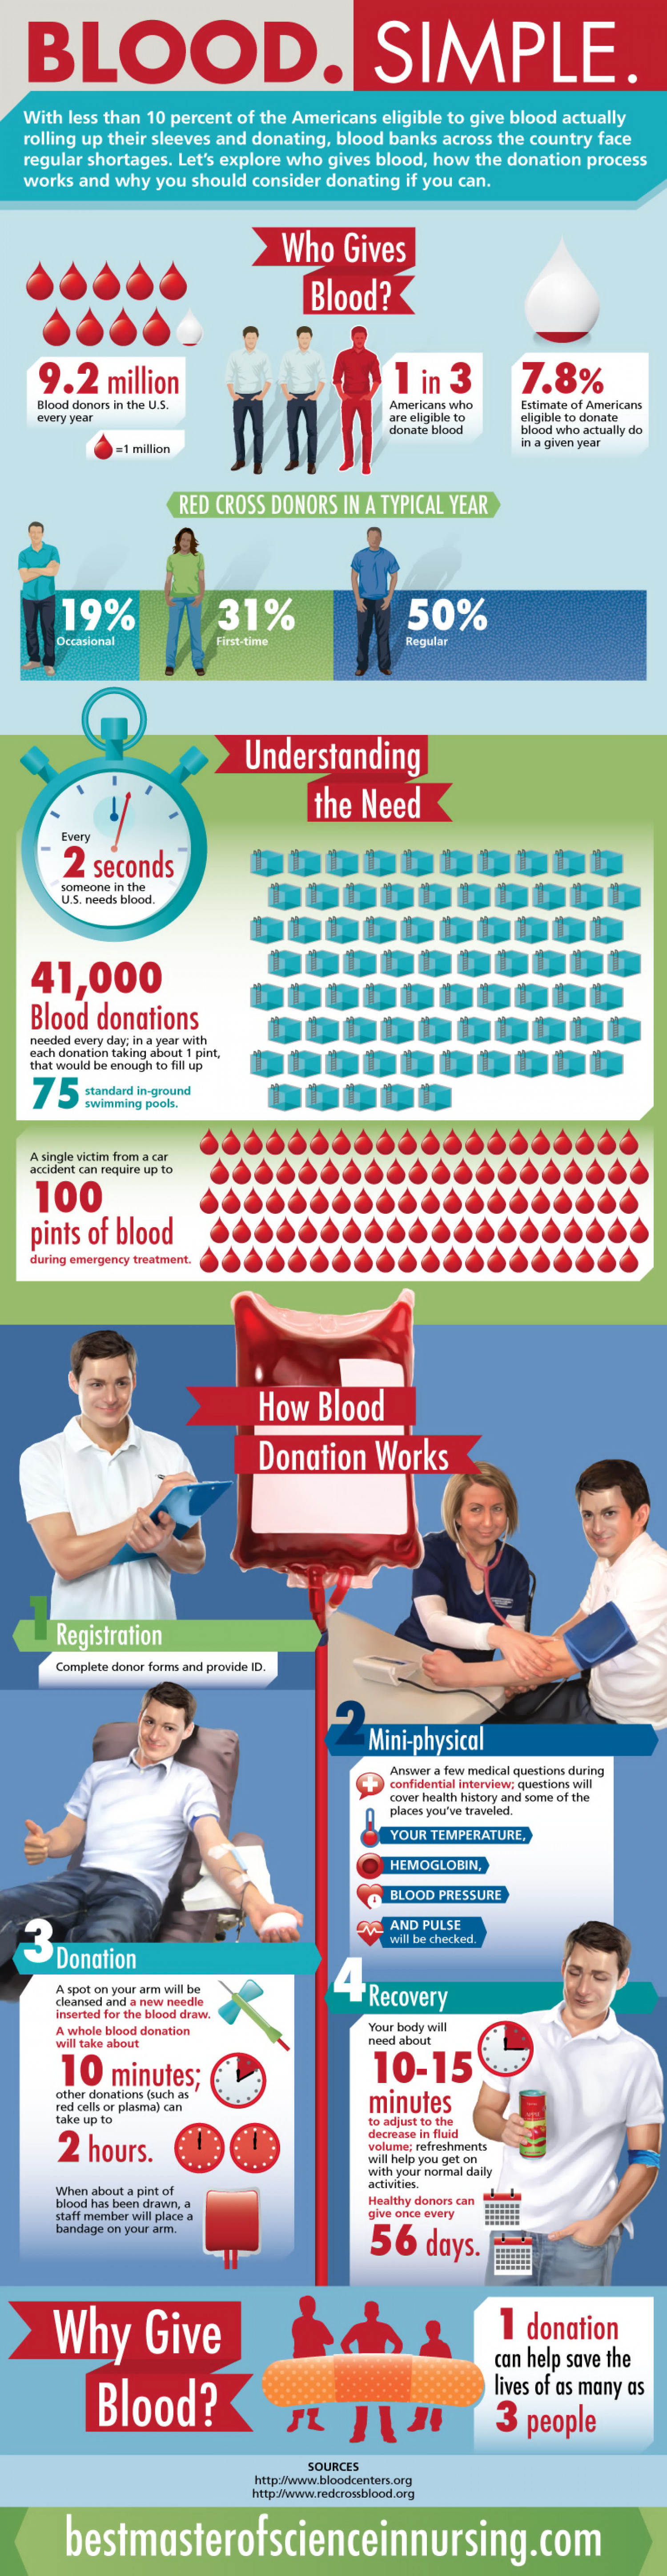 Blood. Simple. Infographic